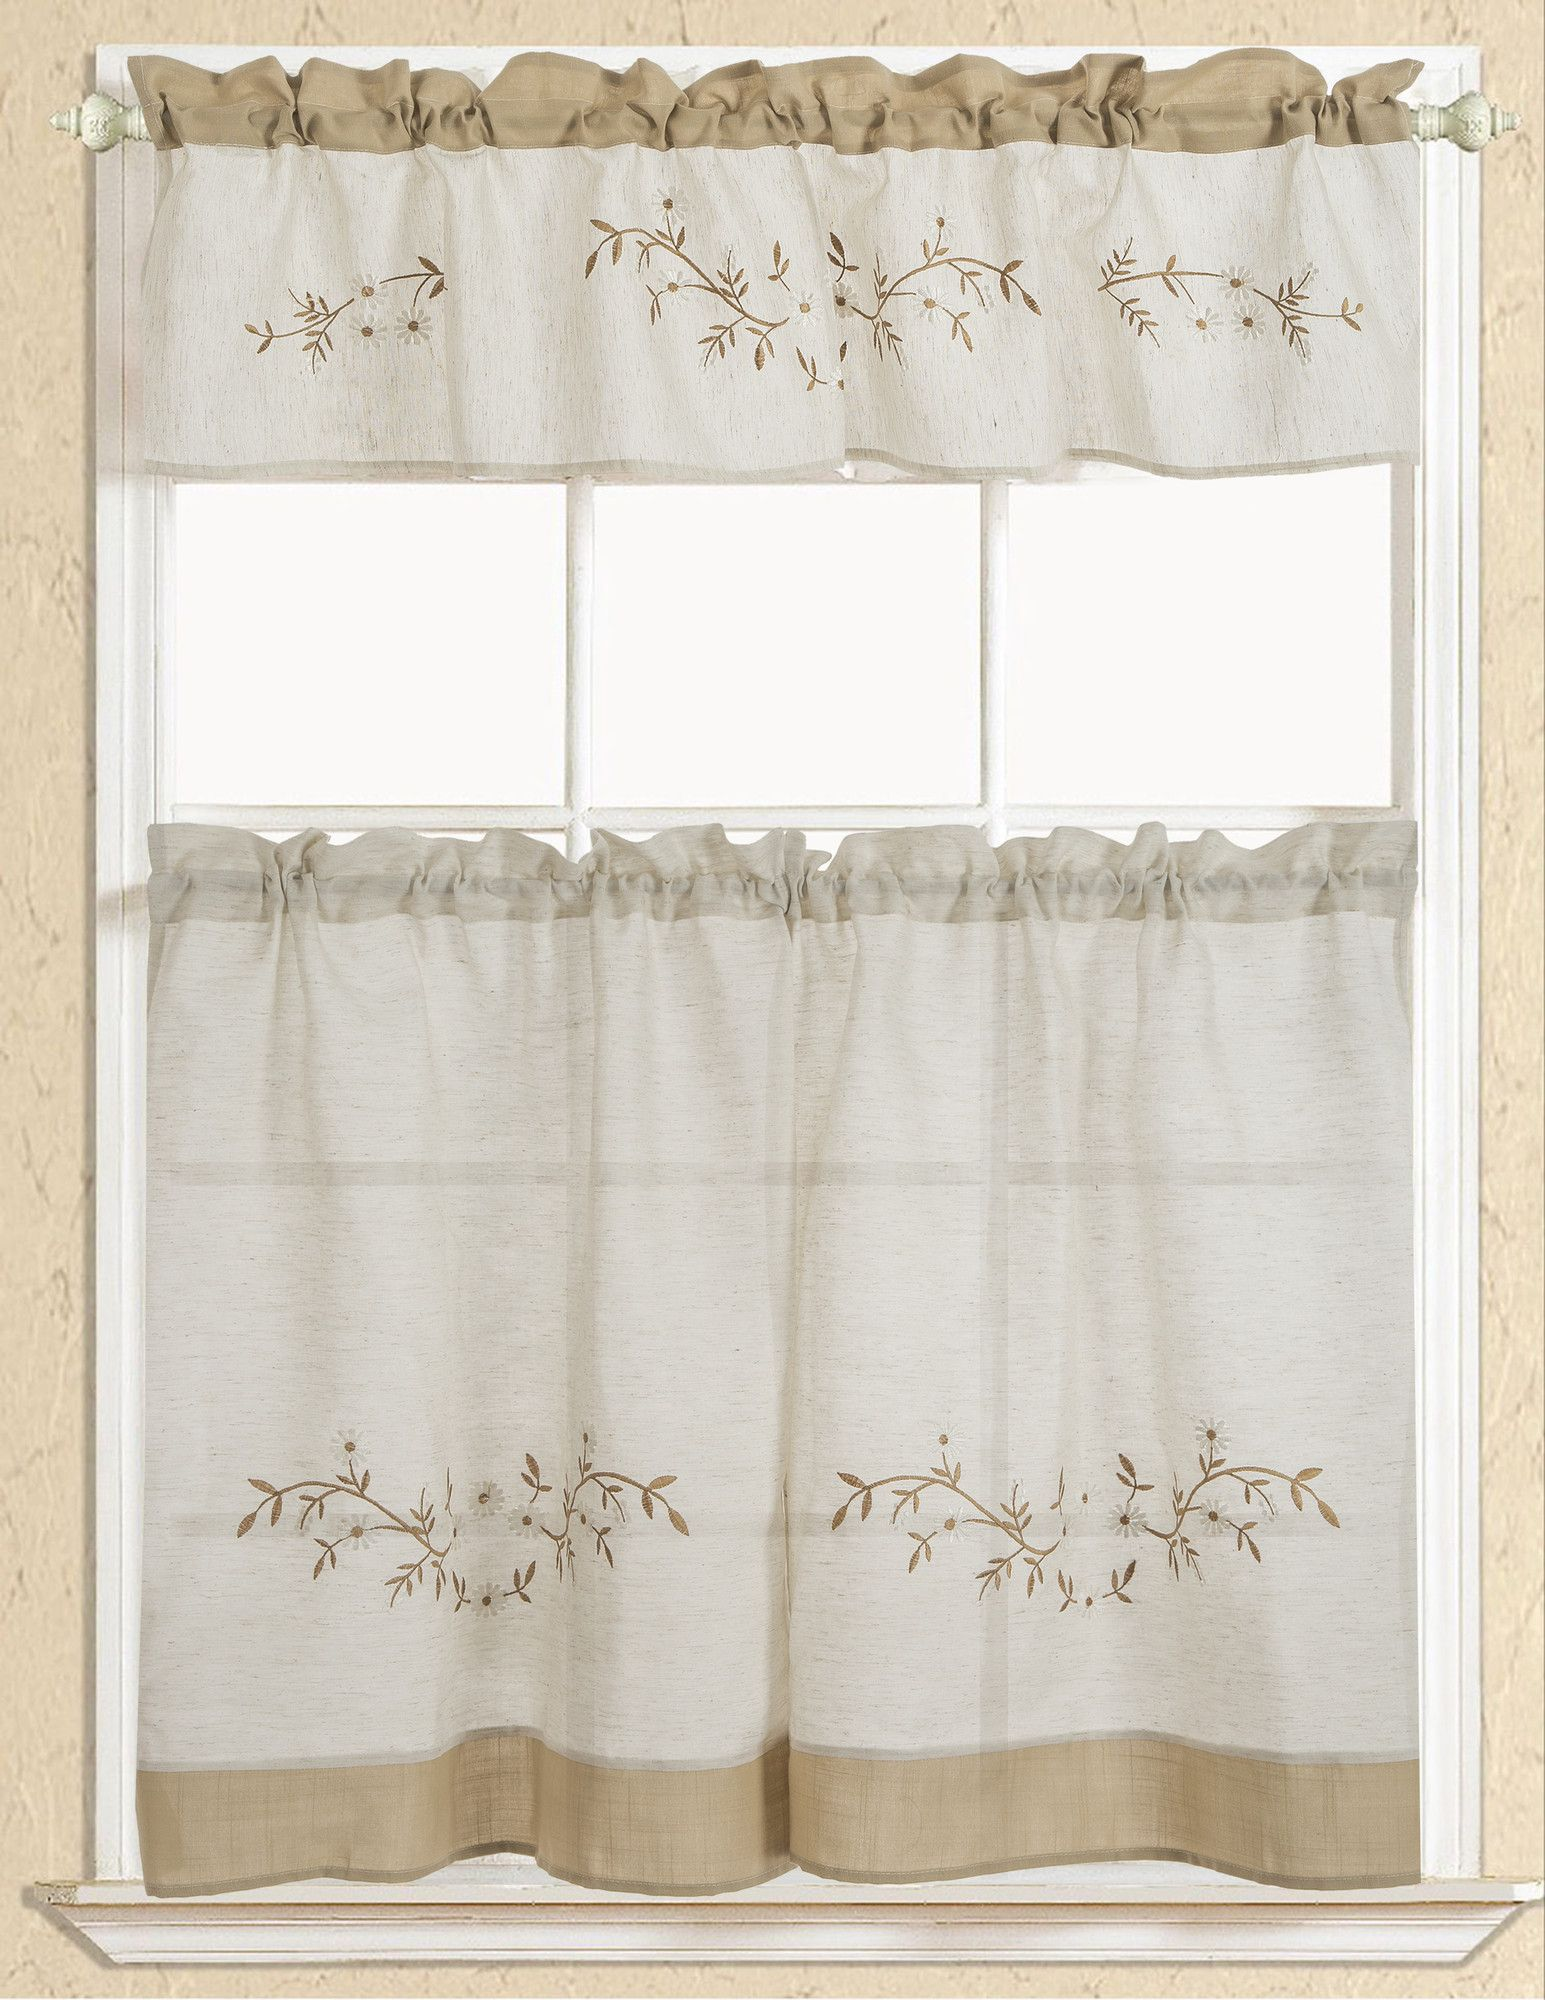 Rustic embroidered kitchen curtain kitchen curtains